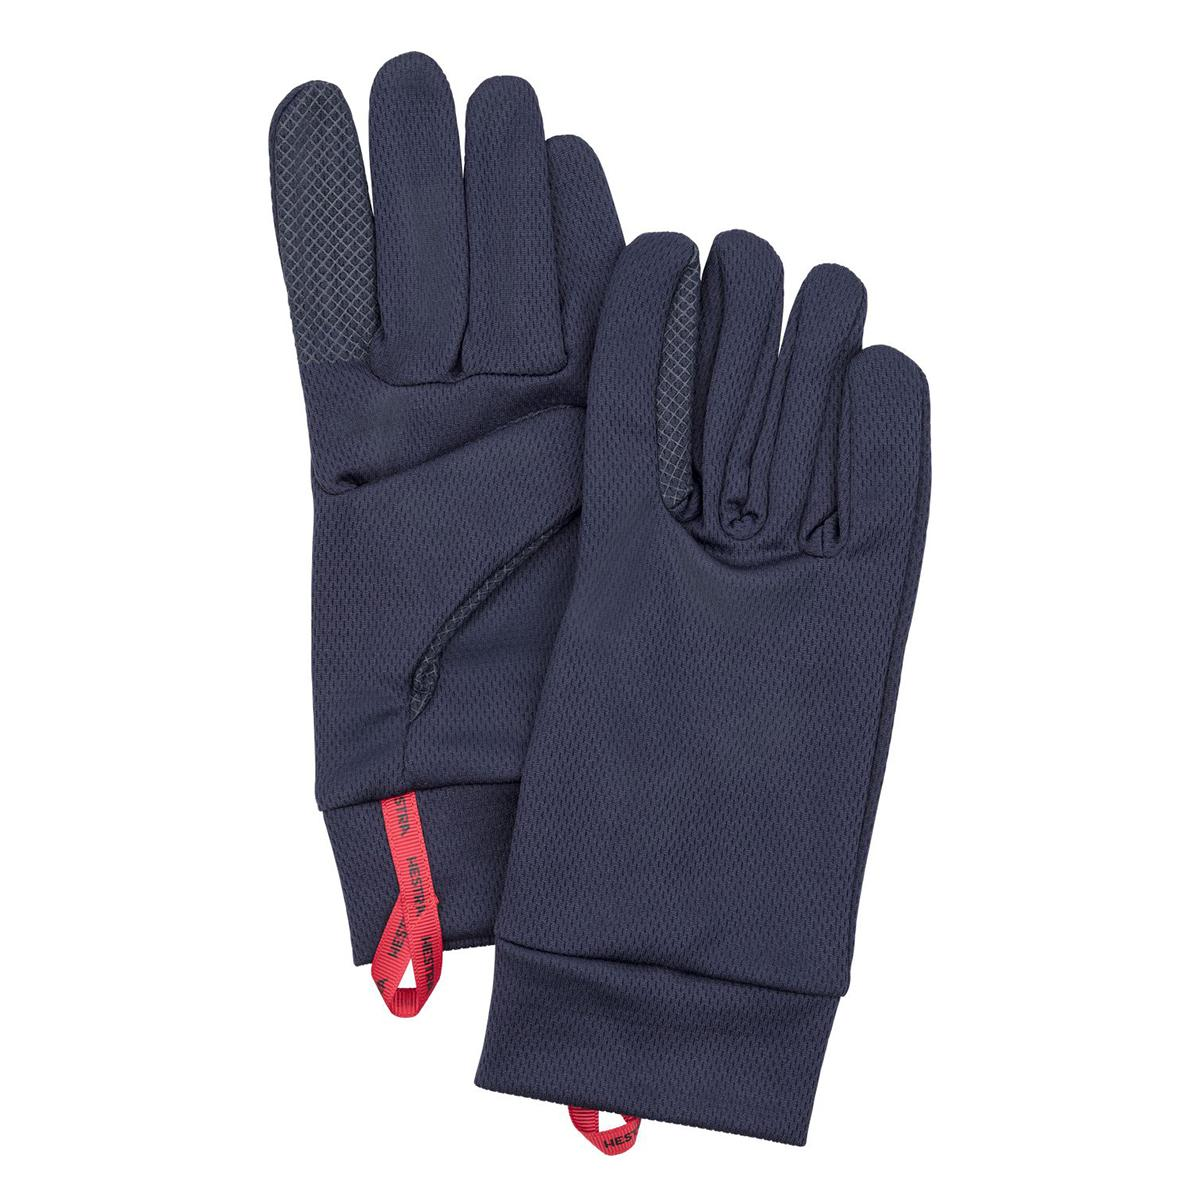 Hestra Touch Point Dry Wool Glove Liner in navy